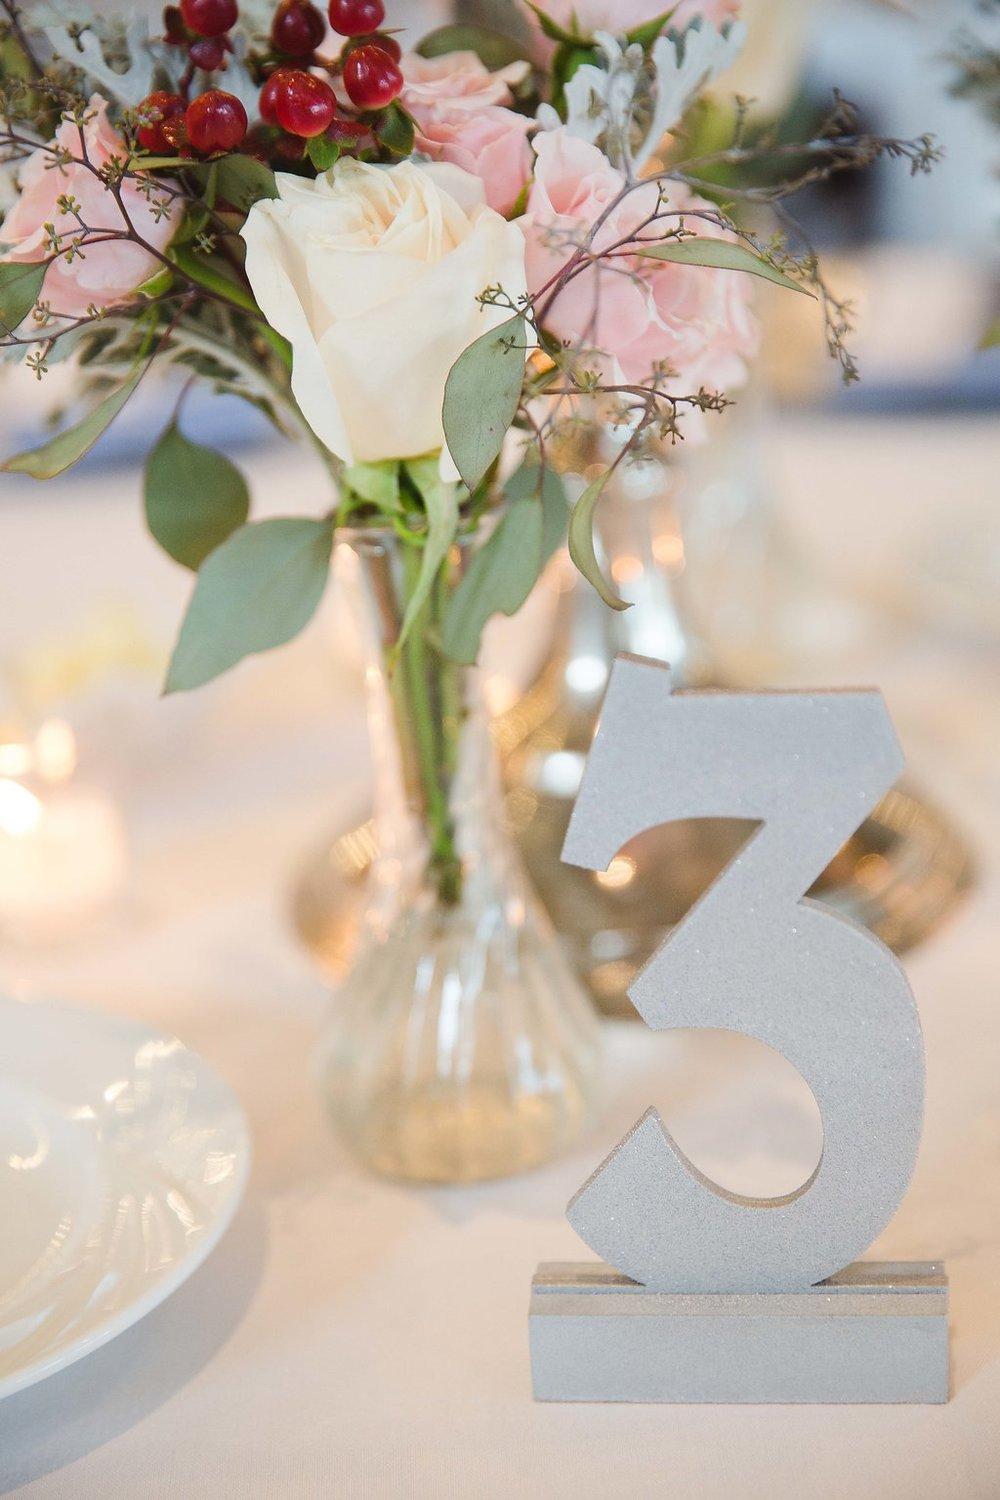 Smaller bunches of florals and sparkling silver table numbers also adorned guest tables.